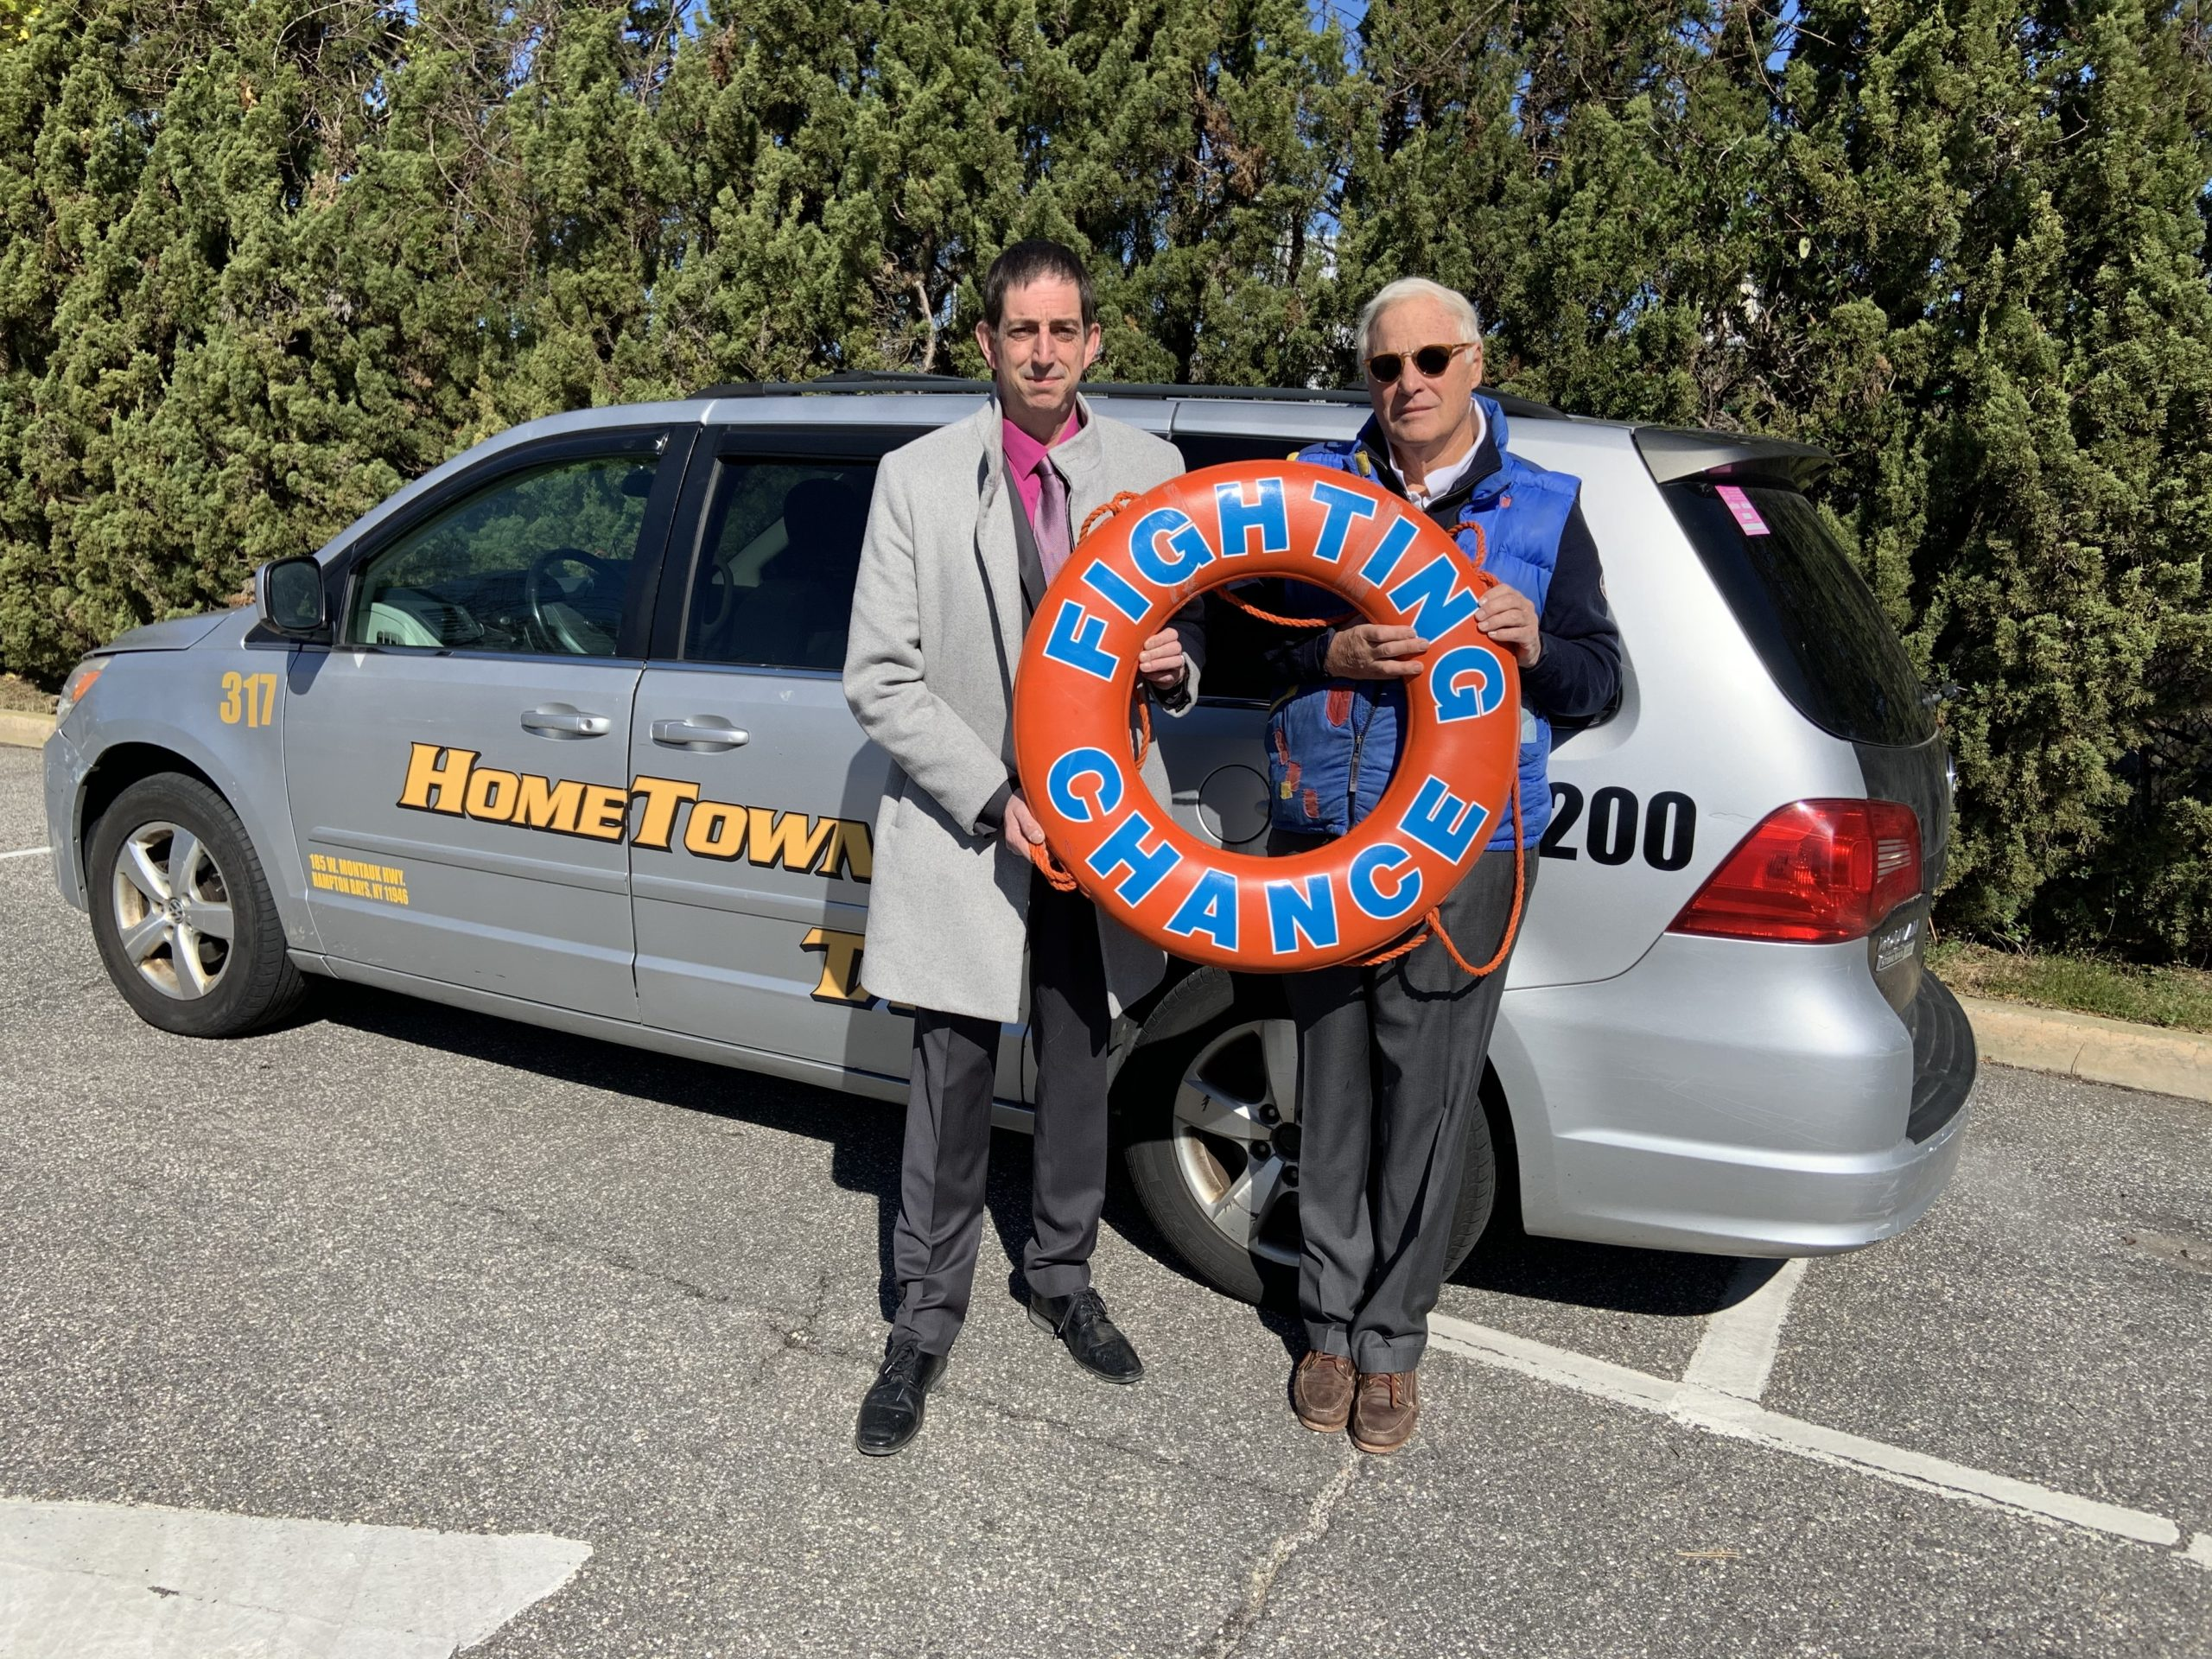 Bryan DaParma, the owner of Hometown Taxi, and Duncan Darrow, the founder of Fighting Chance, have announced a new initiative that will provide free local taxi service for cancer patients on the East End. STEPHEN J. KOTZ